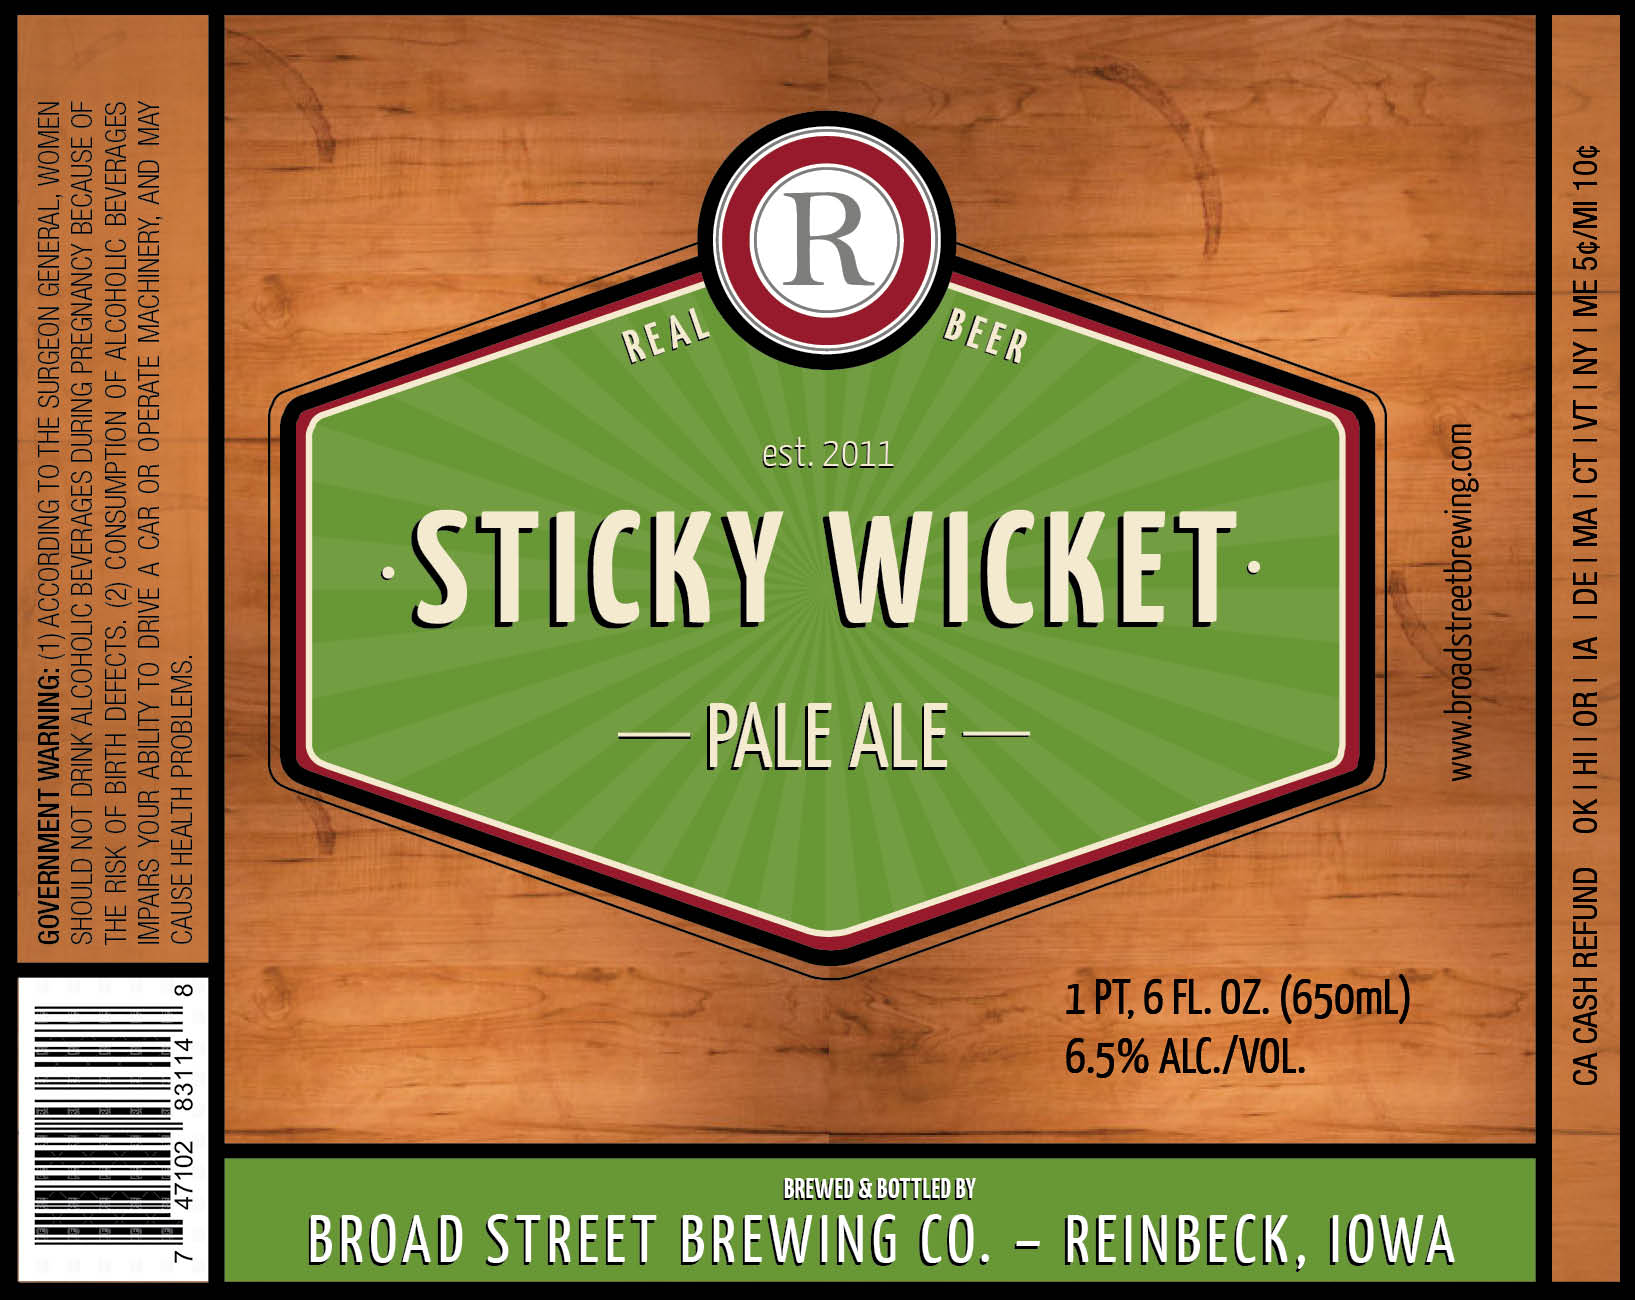 BroadStreetBeerLabel-StickyWicket